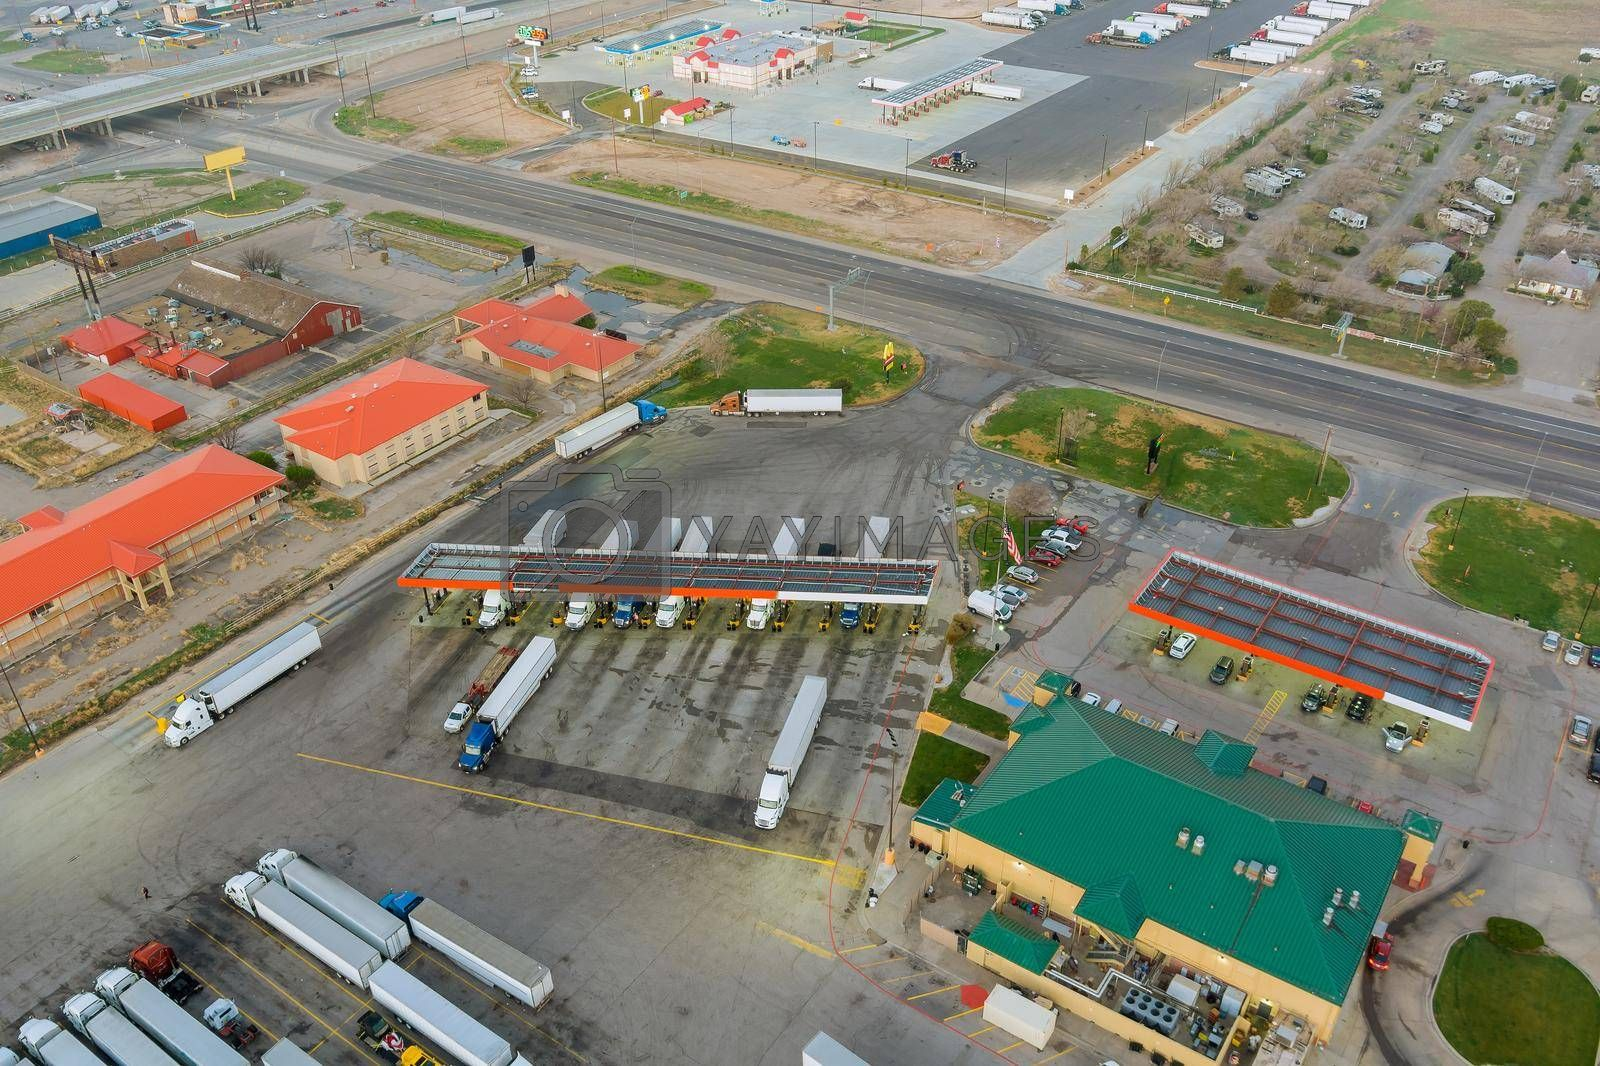 Drone view the automotive large over road semi-trucks at fueling station of the highway on USA